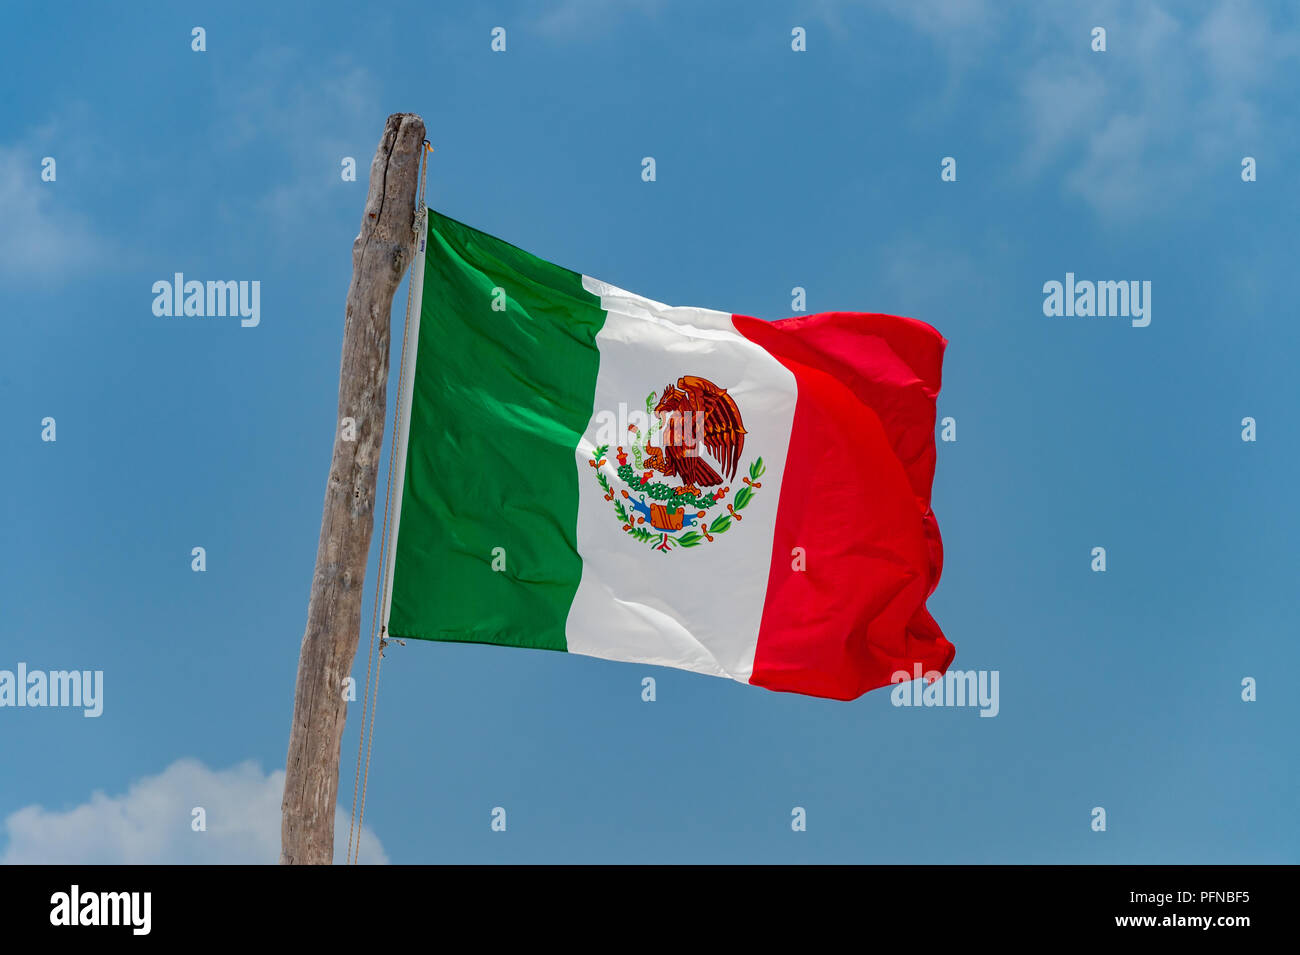 Mexican flag over blue sky in Tulum, Mexico. - Stock Image